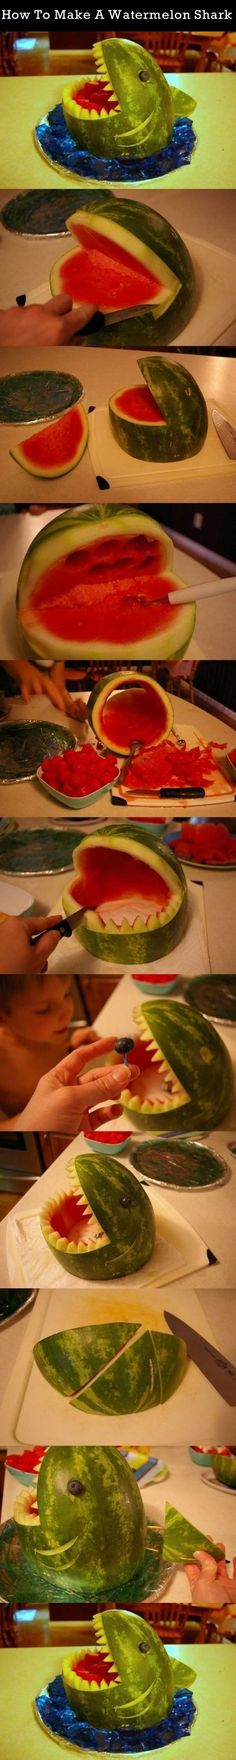 How To Make A Watermelon Shark Pictures, Photos, and Images for Facebook, Tumblr, Pinterest, and Twitter